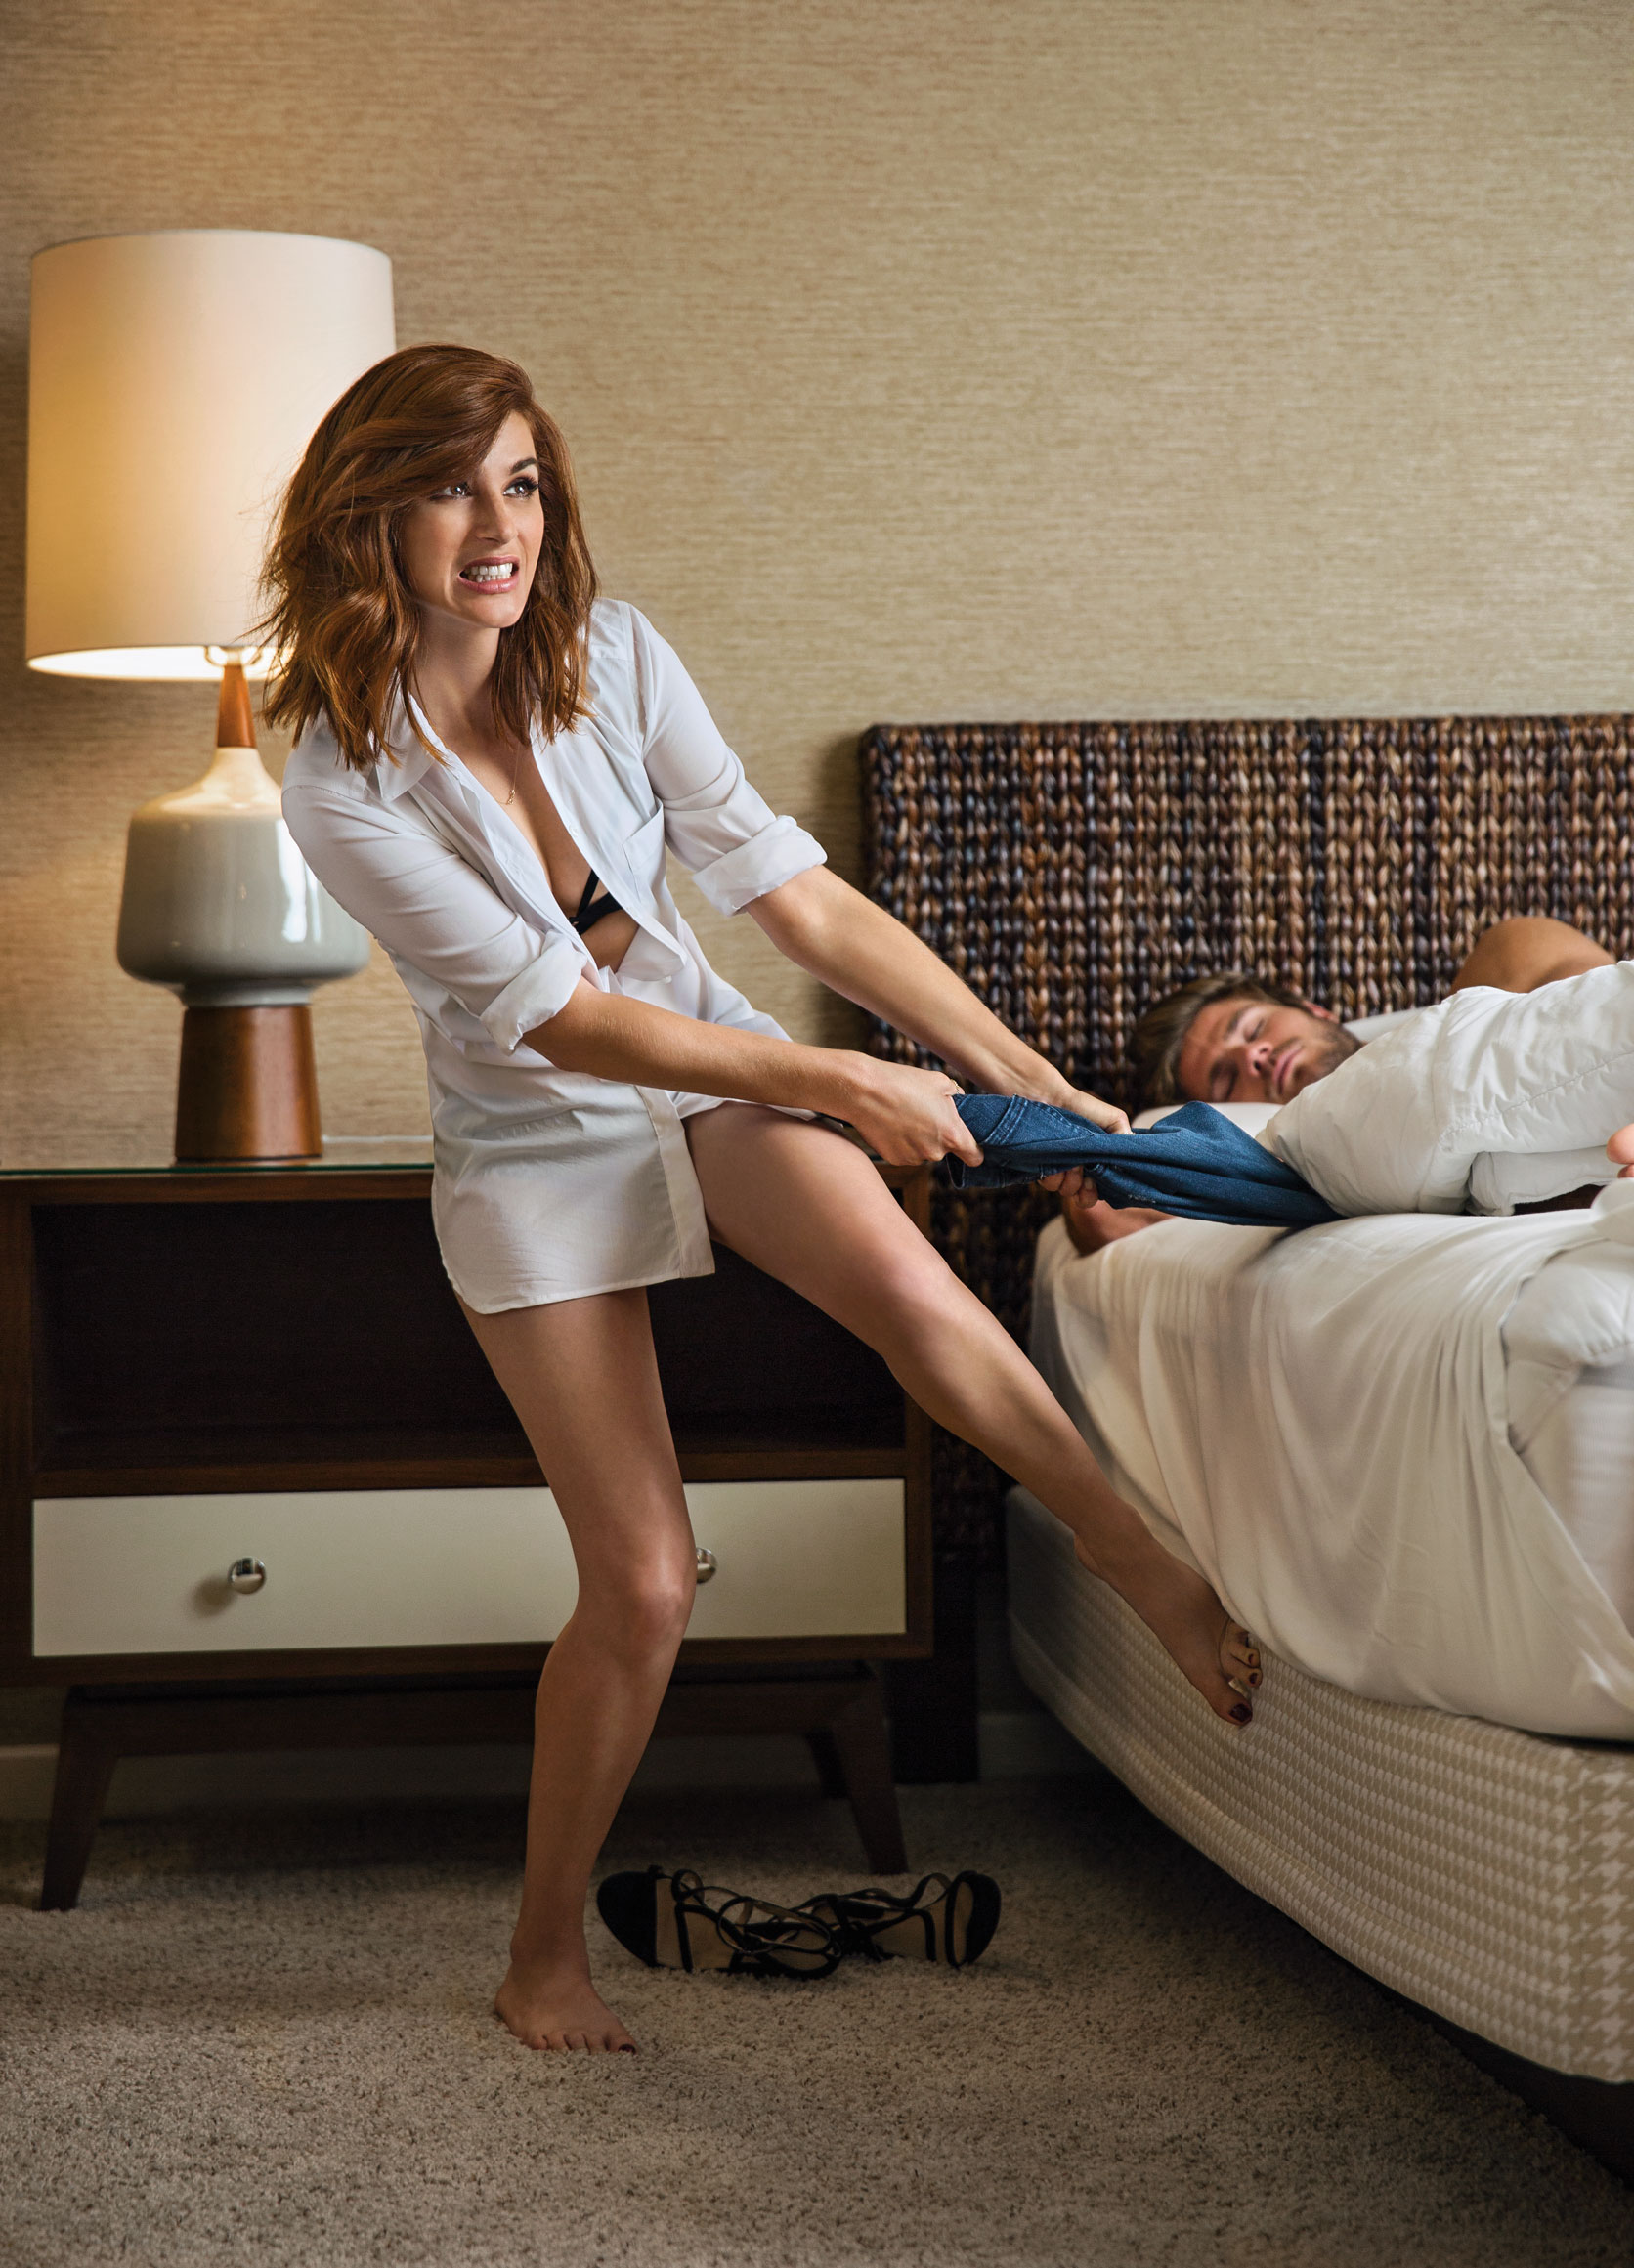 Leaked Sexy Aya Cash  nudes (91 photo), iCloud, butt